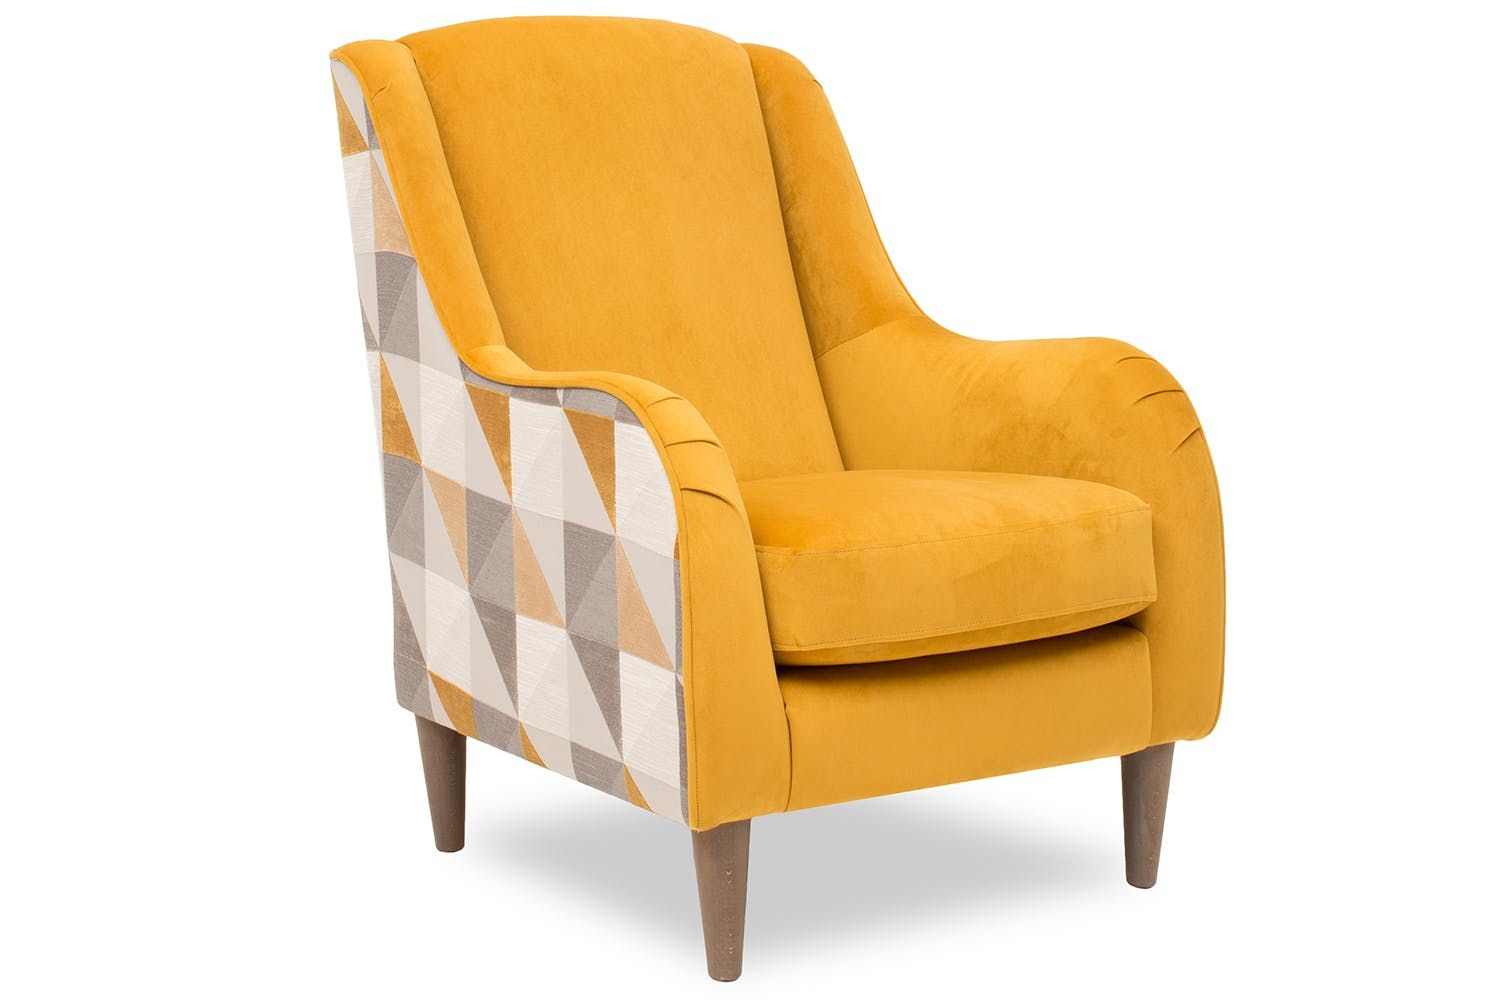 Holli Accent Chair Colour Options Accent Chairs Chair Yellow